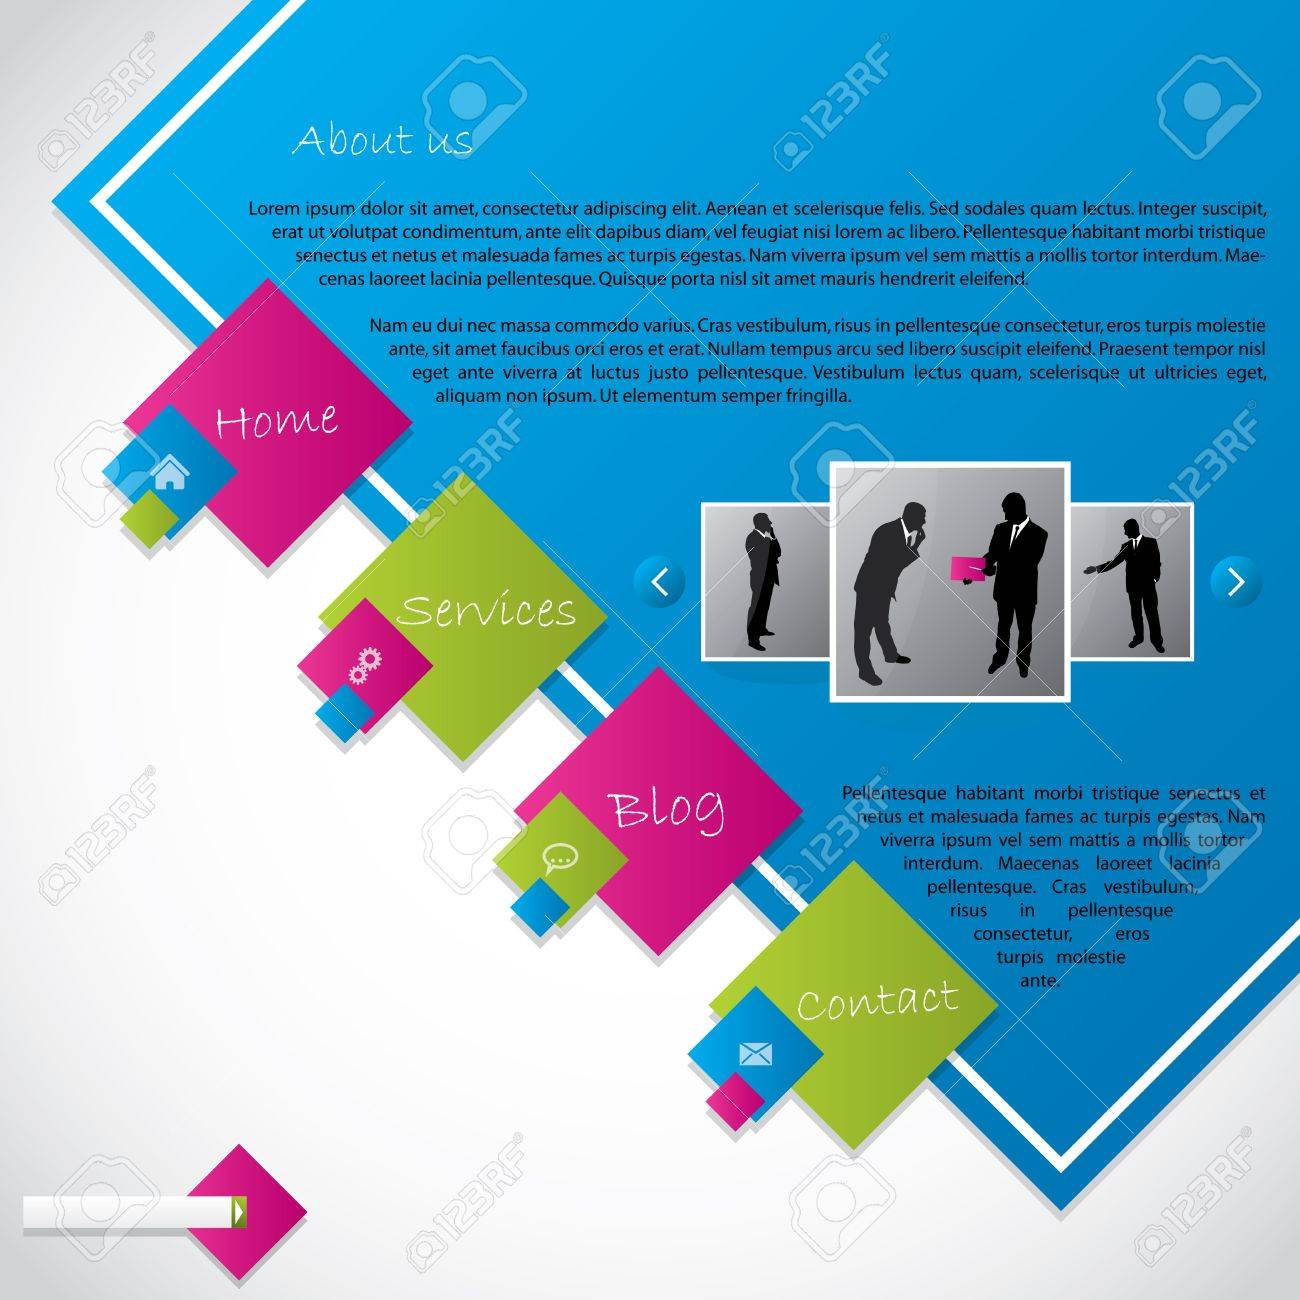 Cool new web template design with vivid colors Stock Vector - 15730034